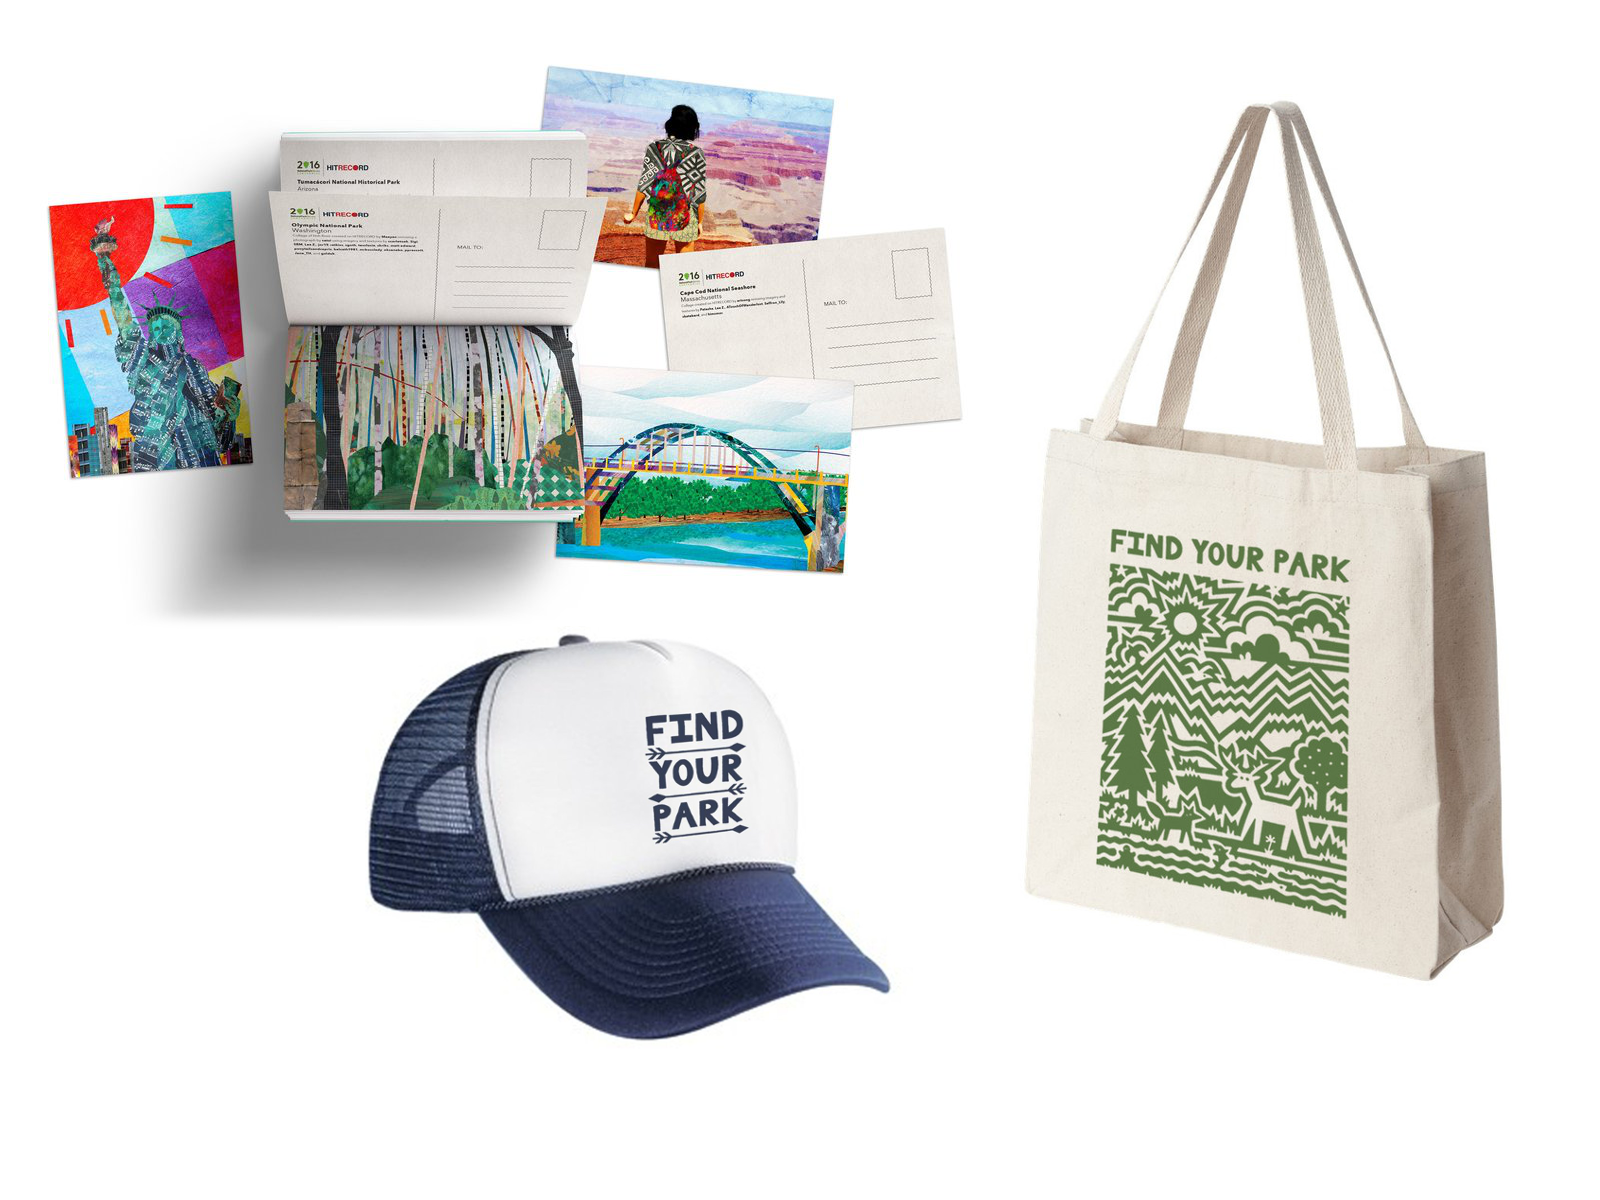 postcards, ballcap, and tote bag